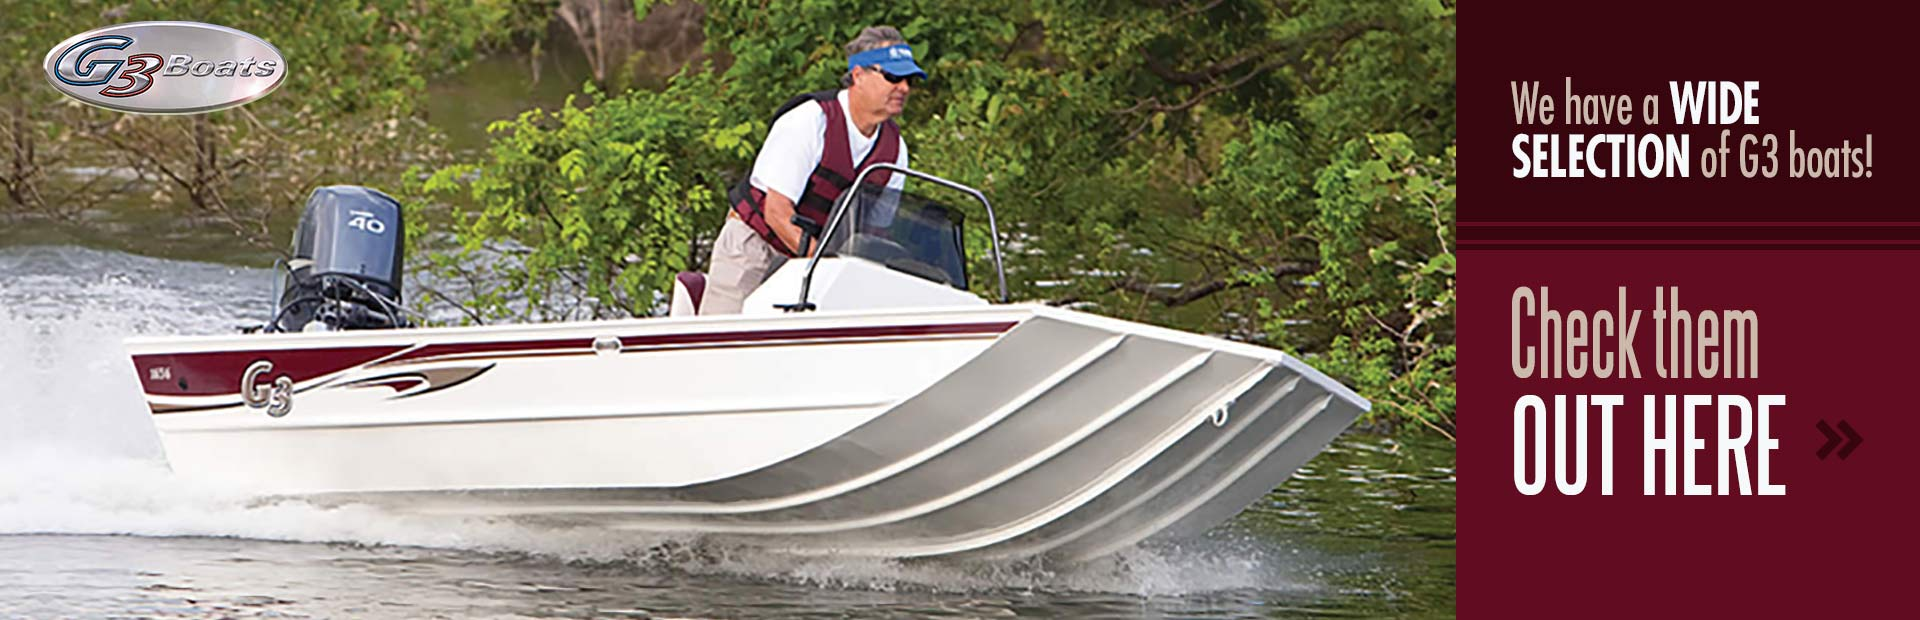 We have a wide selection of G3 boats. Click here to see our selection.